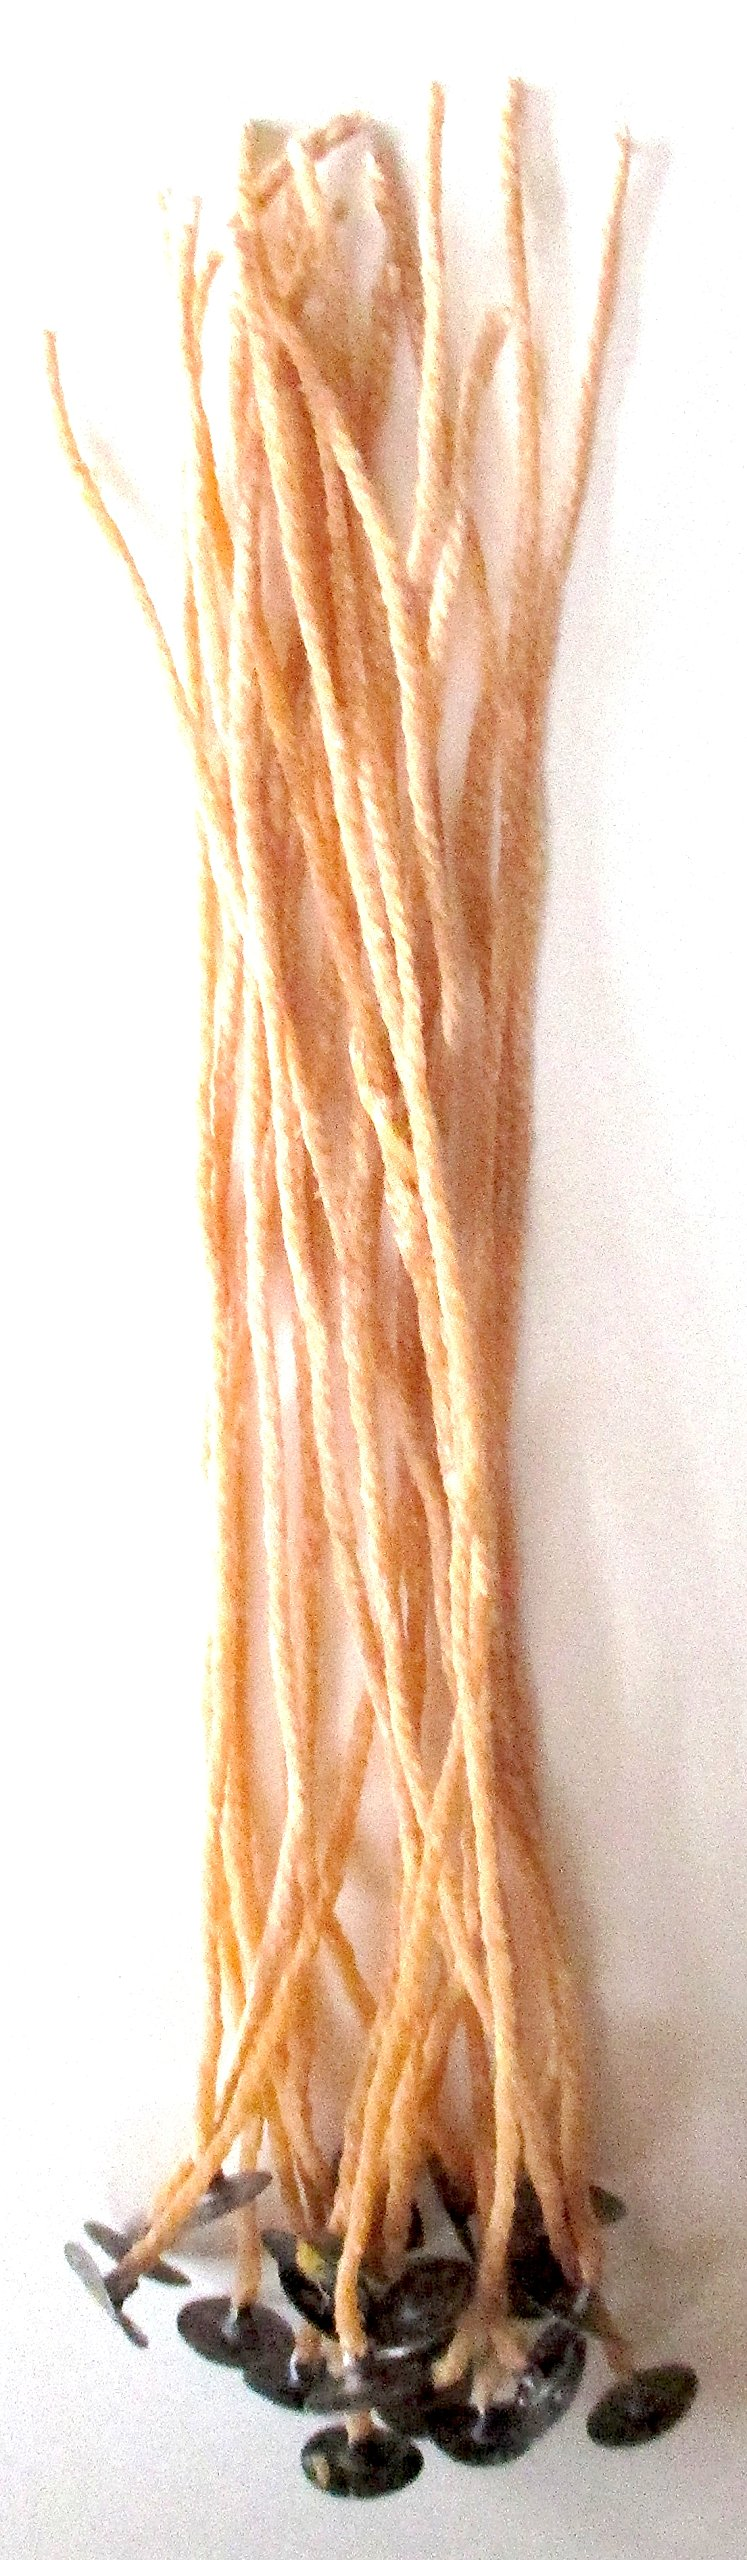 Organic Beeswax Candle Wicks with Tabs Pre-waxed 8 Inch 20 Count